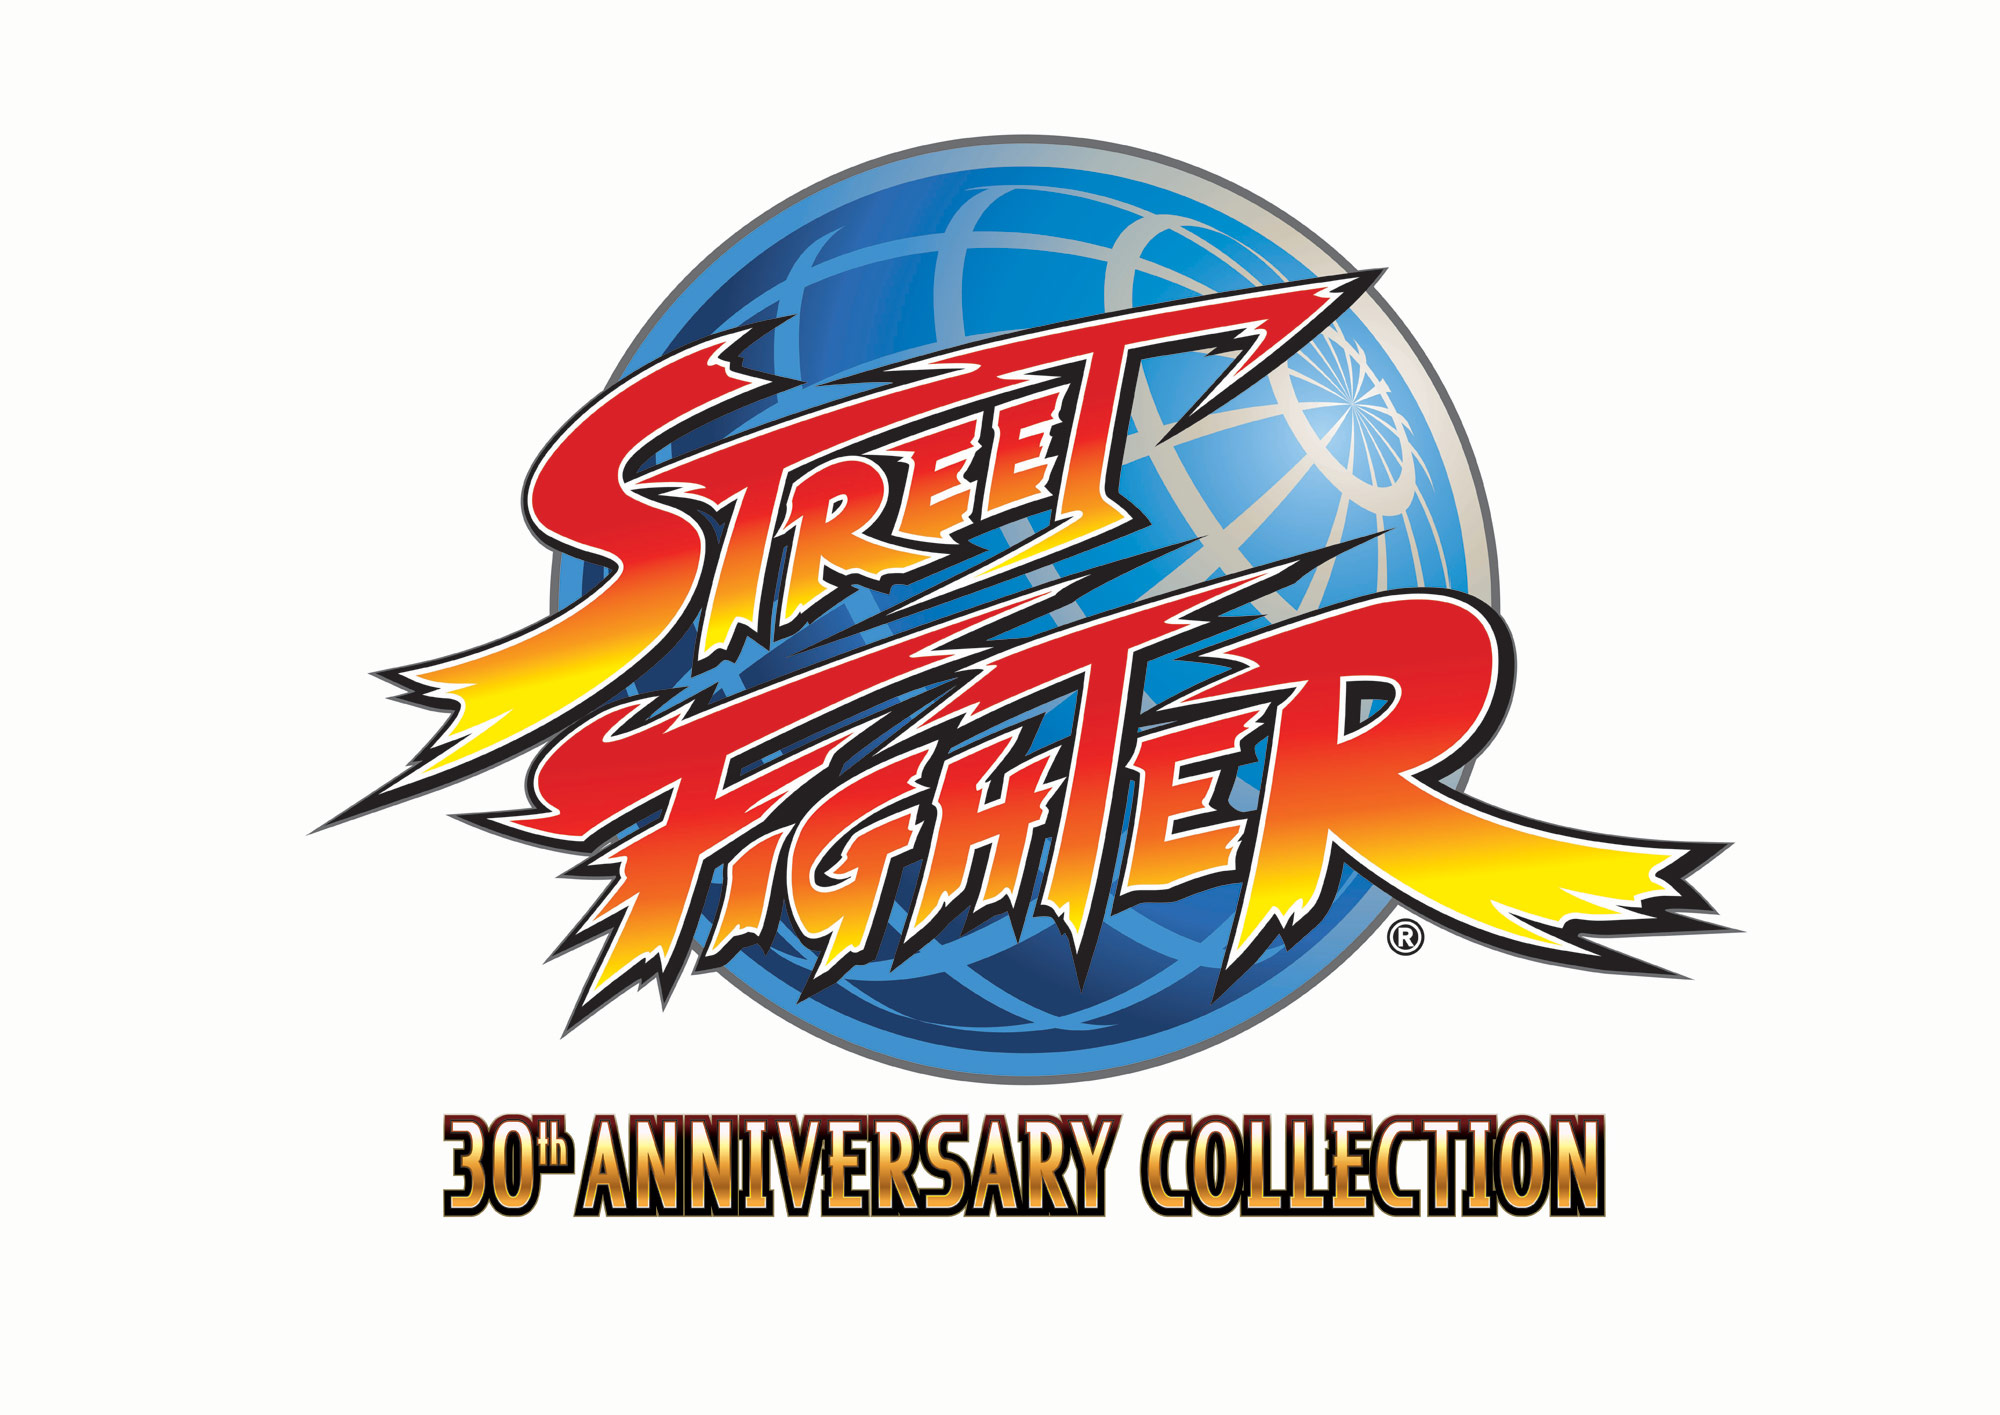 Resultado de imagem para street fighter 30th anniversary collection logo png